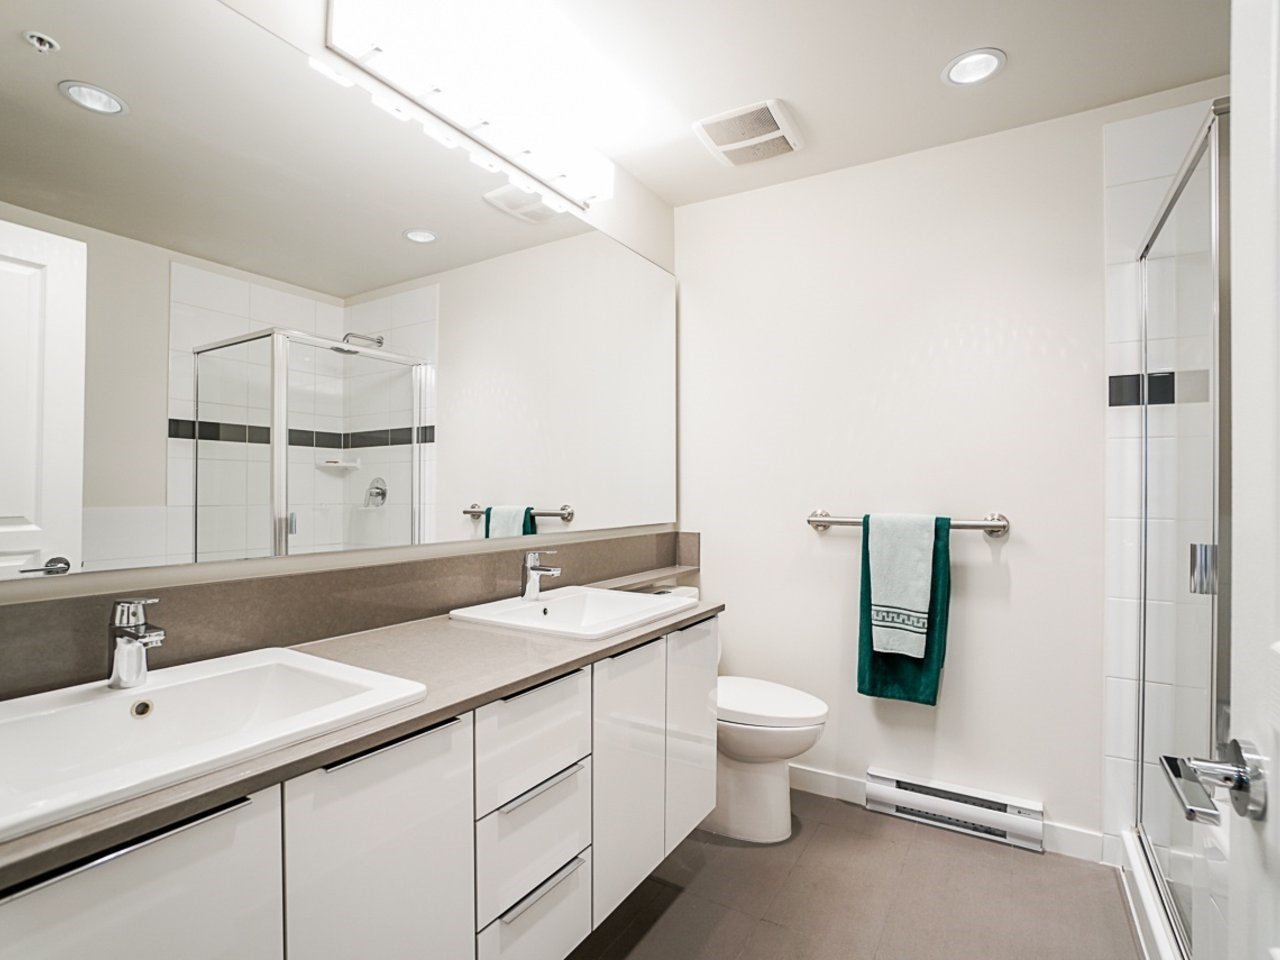 Photo 24: Photos: 108 1151 WINDSOR Mews in Coquitlam: New Horizons Condo for sale : MLS®# R2500299